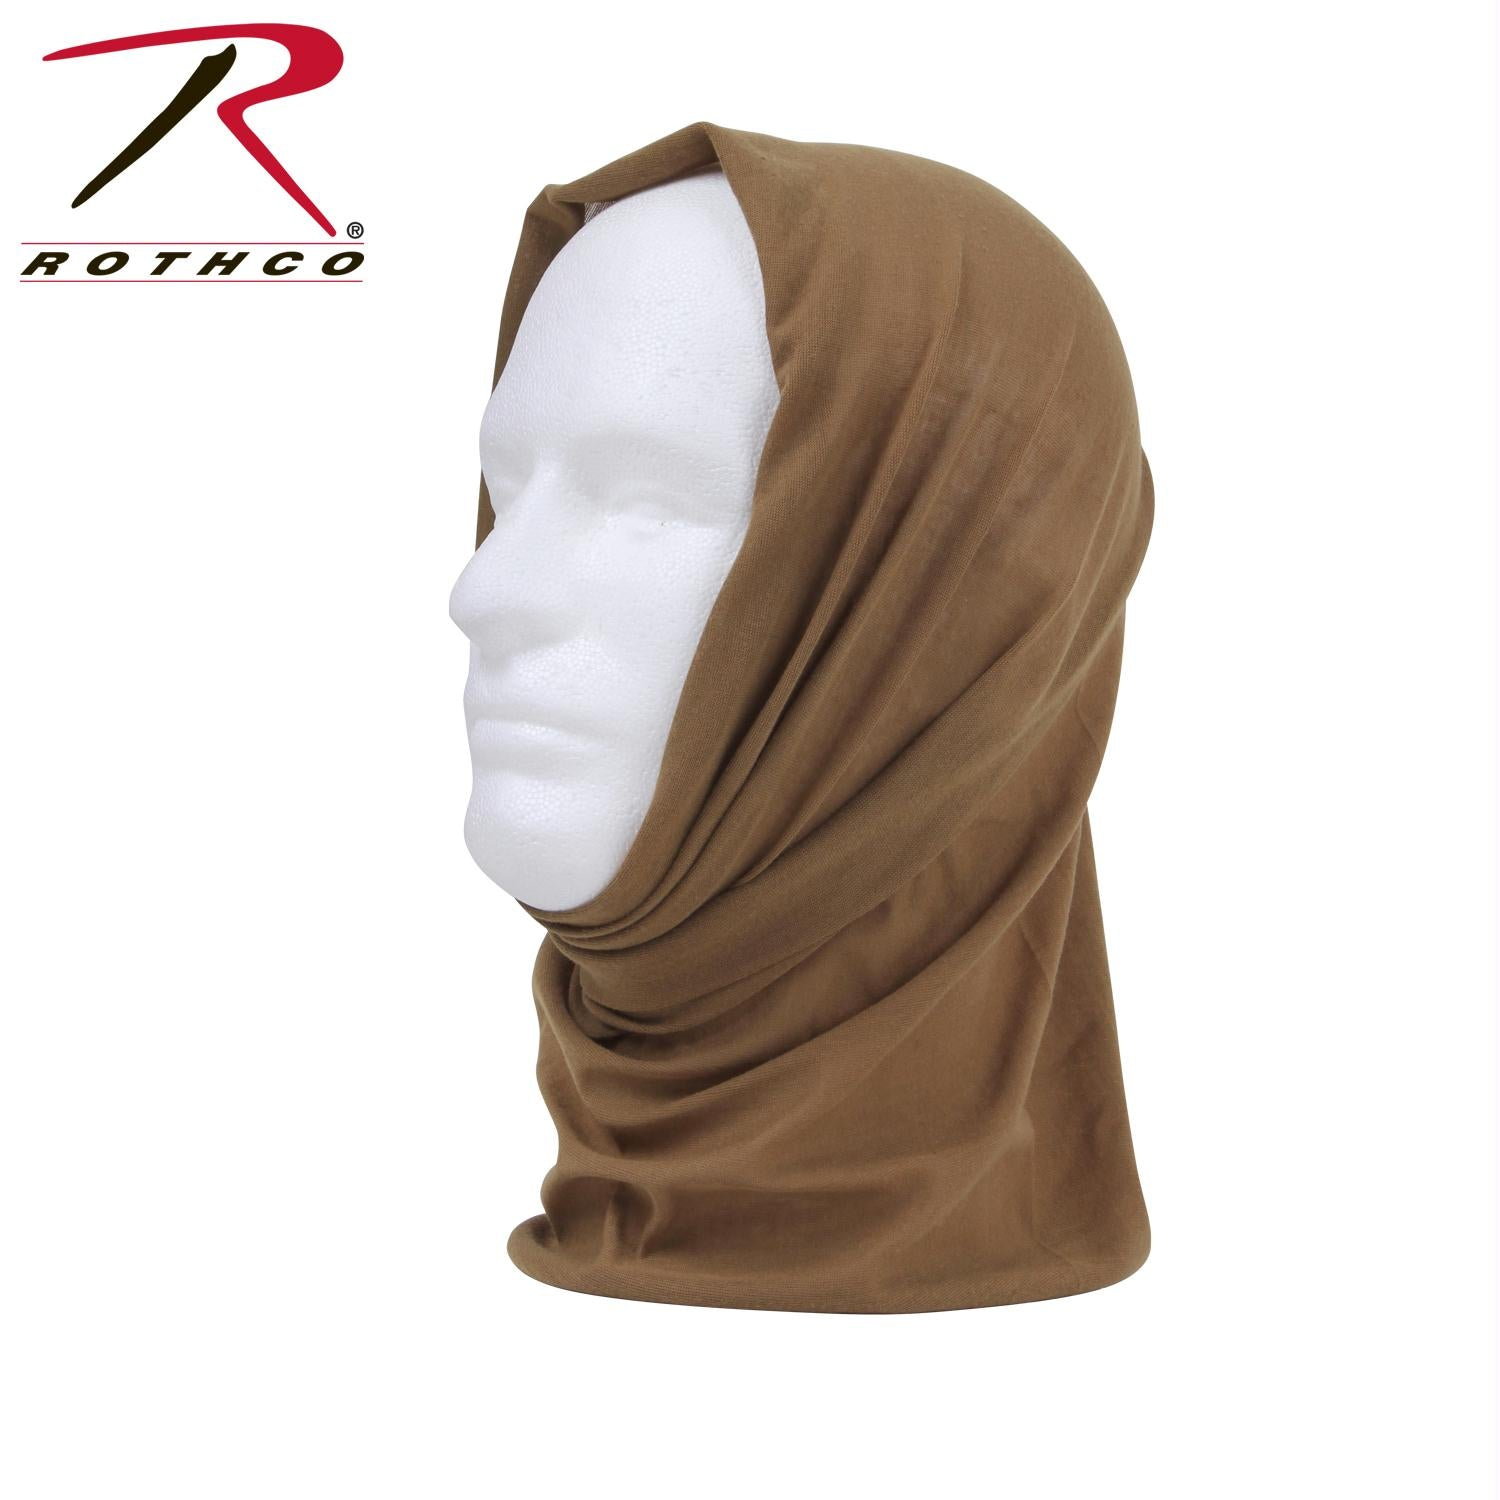 Rothco Multi Use Tactical Wrap - Coyote Brown